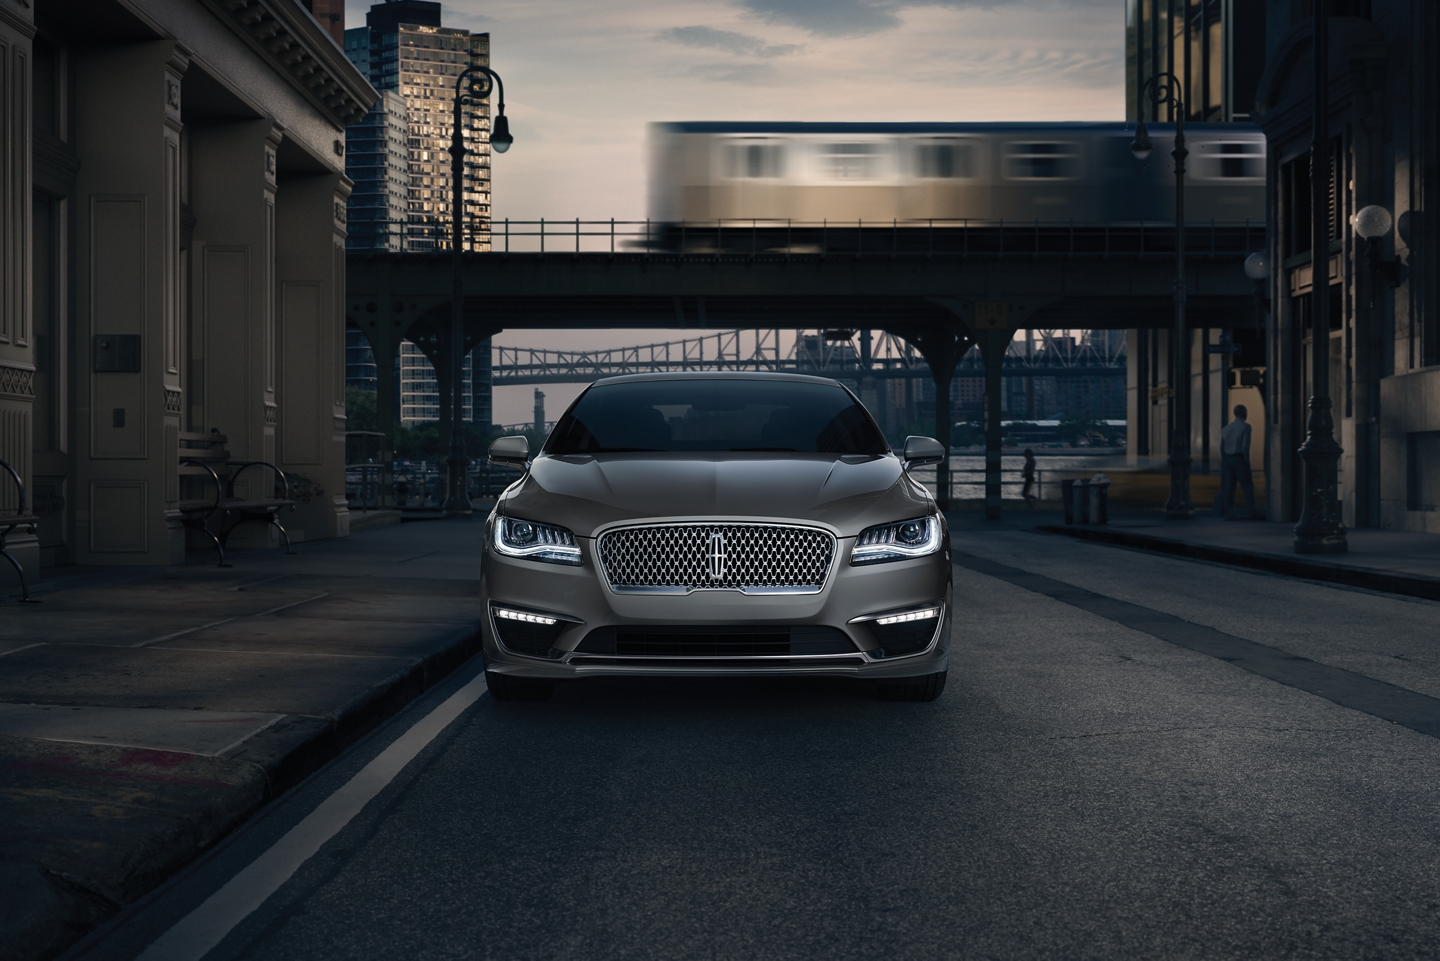 The 2020 Lincoln MKZ for sale at Jack Demmer Lincoln in Dearborn, MI